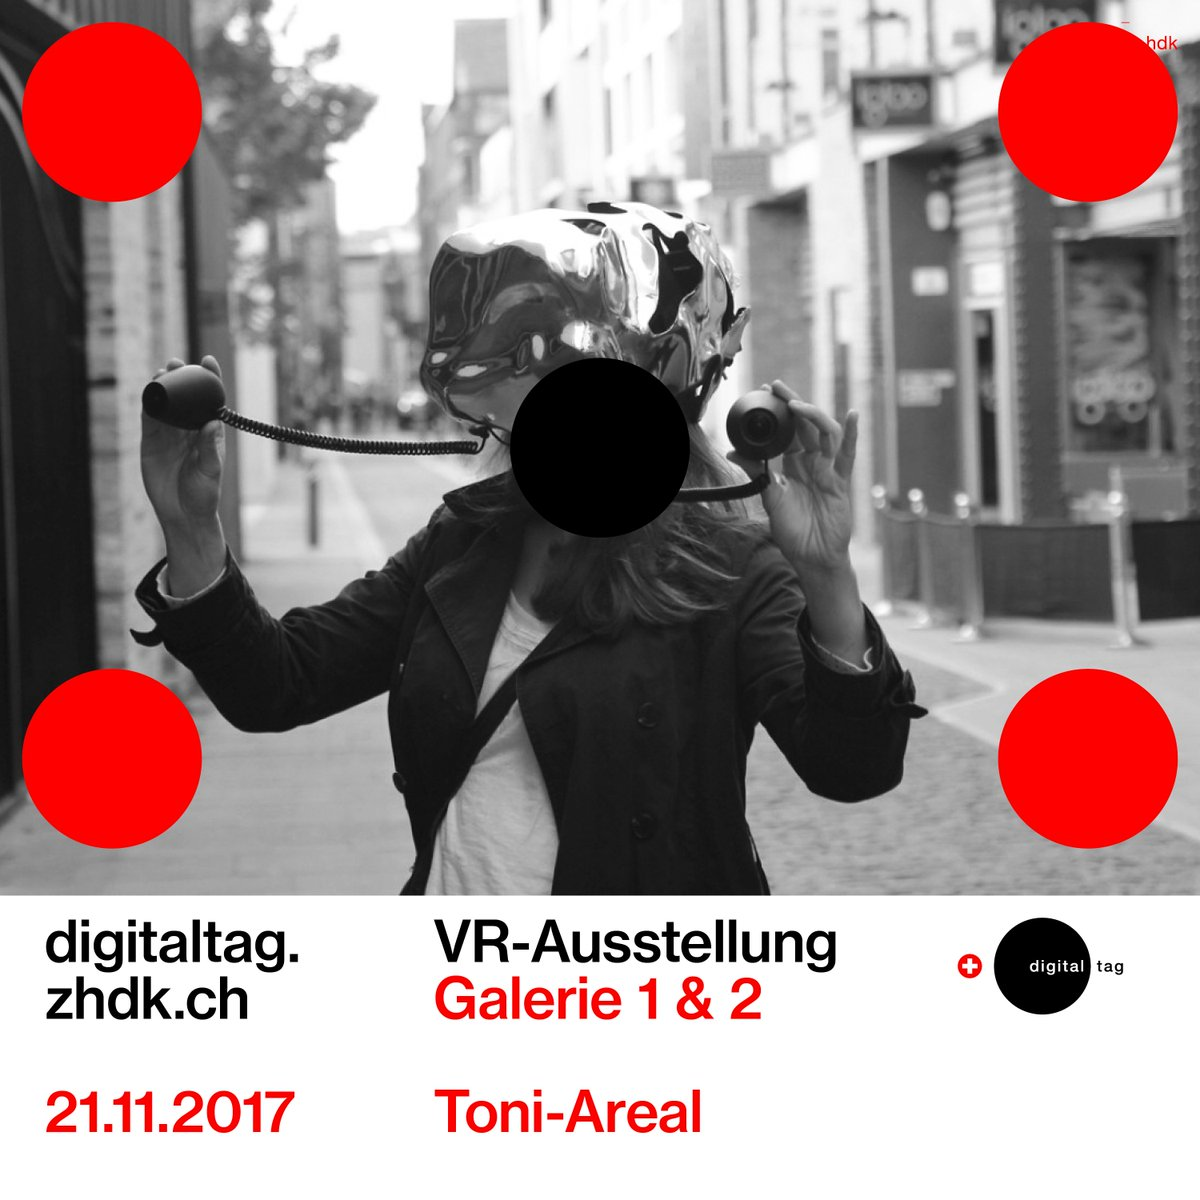 Game design zhdk gamedesignzhdk twitter vr conference expanding immersive design immerse yourself 14 showcased projects get involved swissgames zhdk httpbit2xqjvpr picitter solutioingenieria